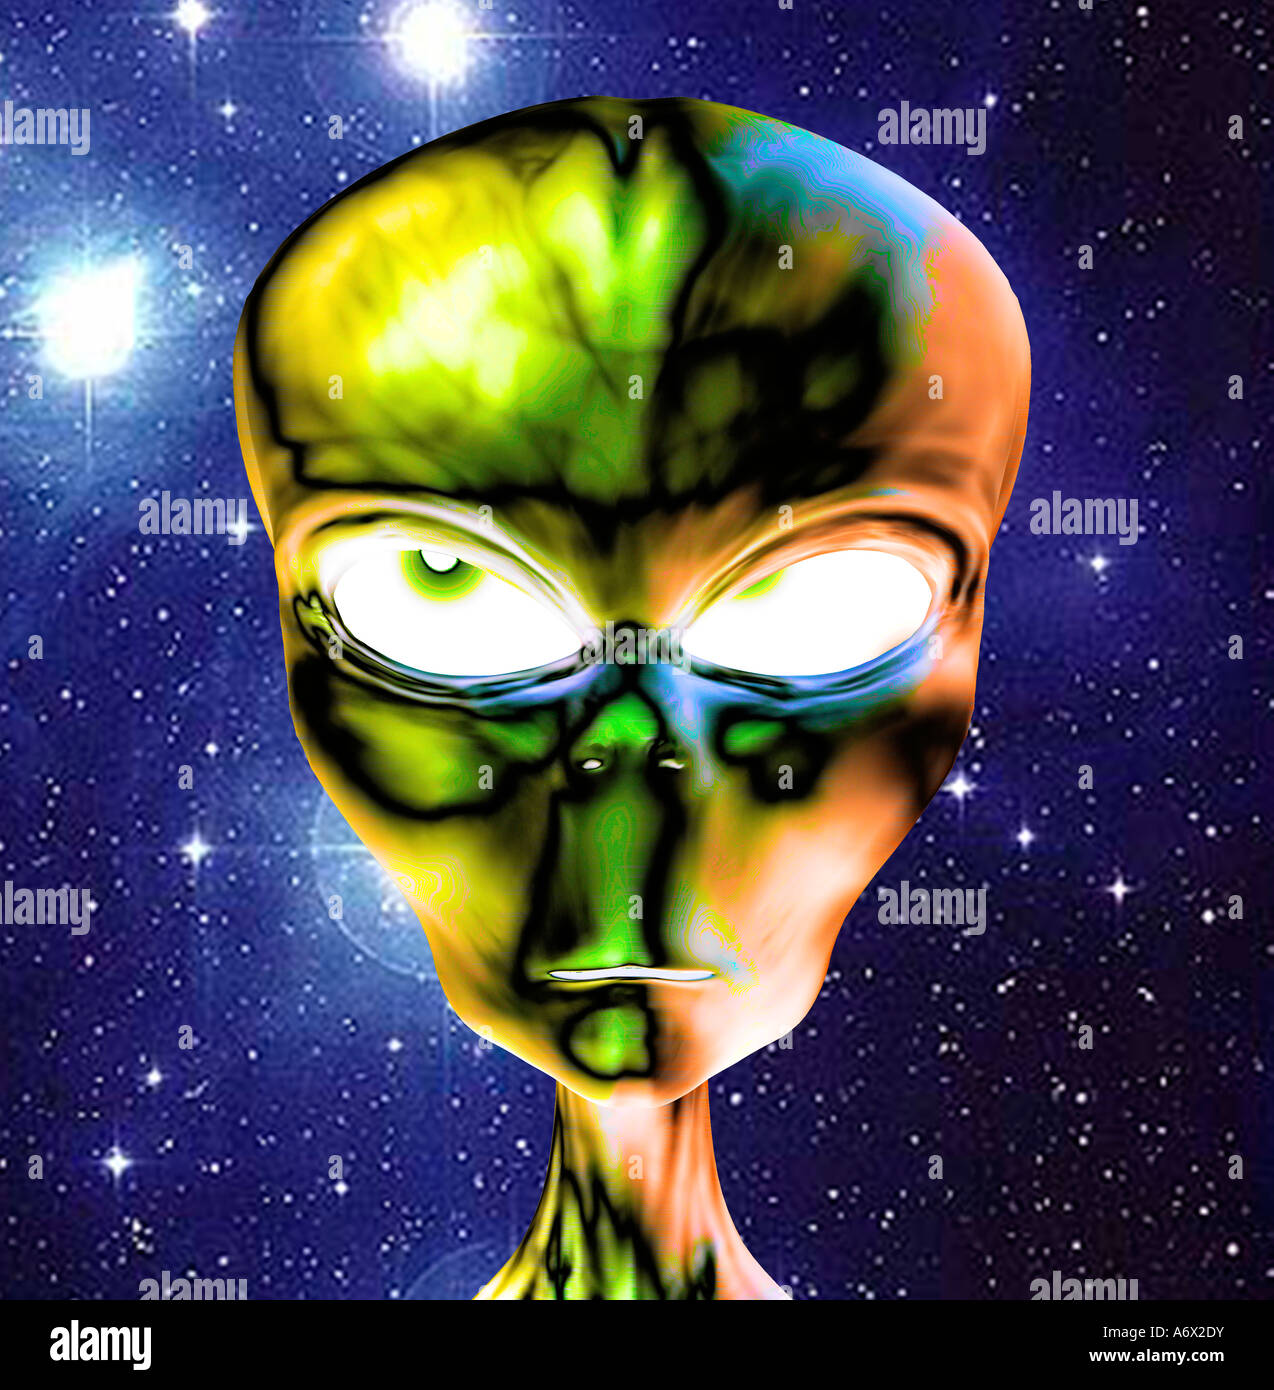 futuristic 3D computer generated bionic male alien head on background of digital NASA view  Milky Way - Stock Image